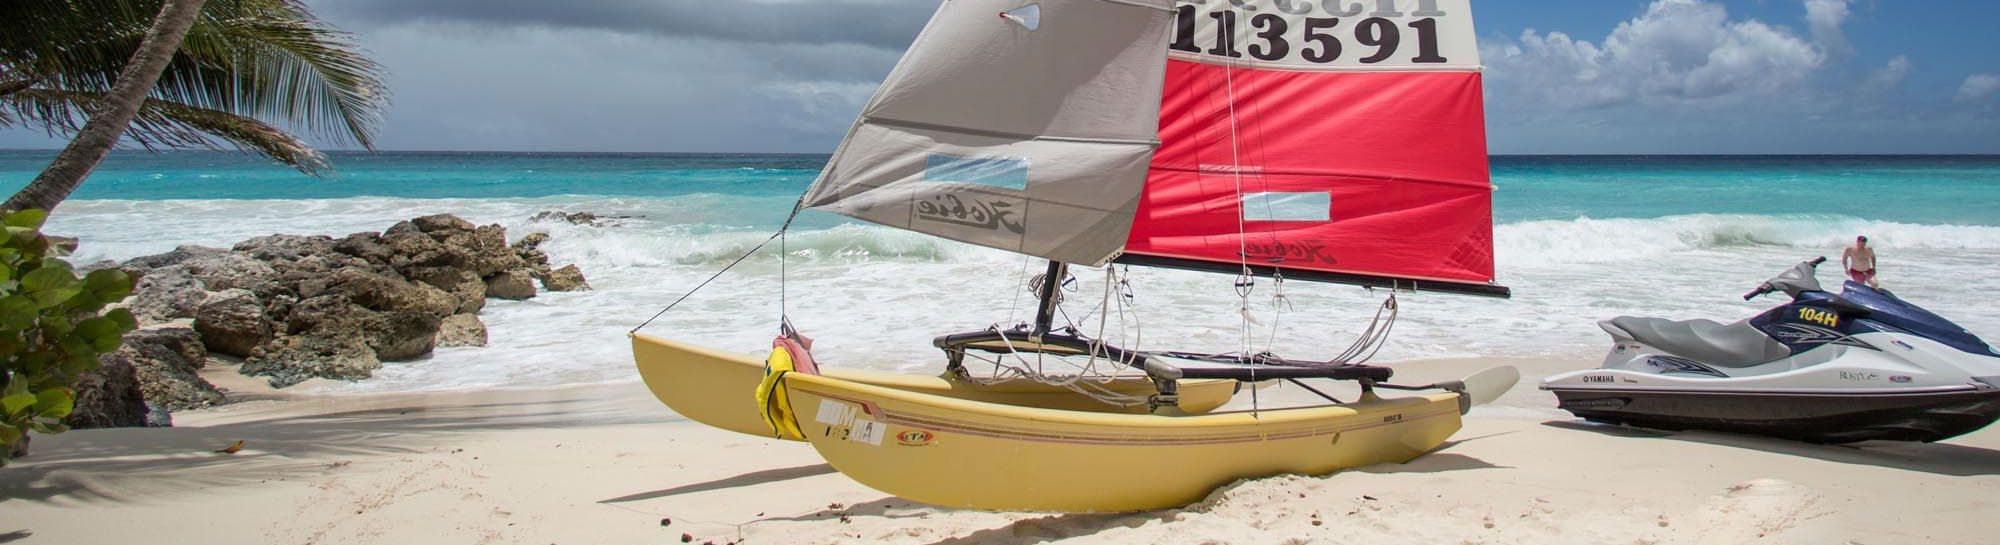 sailing boat at the Turtle Beach by Elegant Hotels